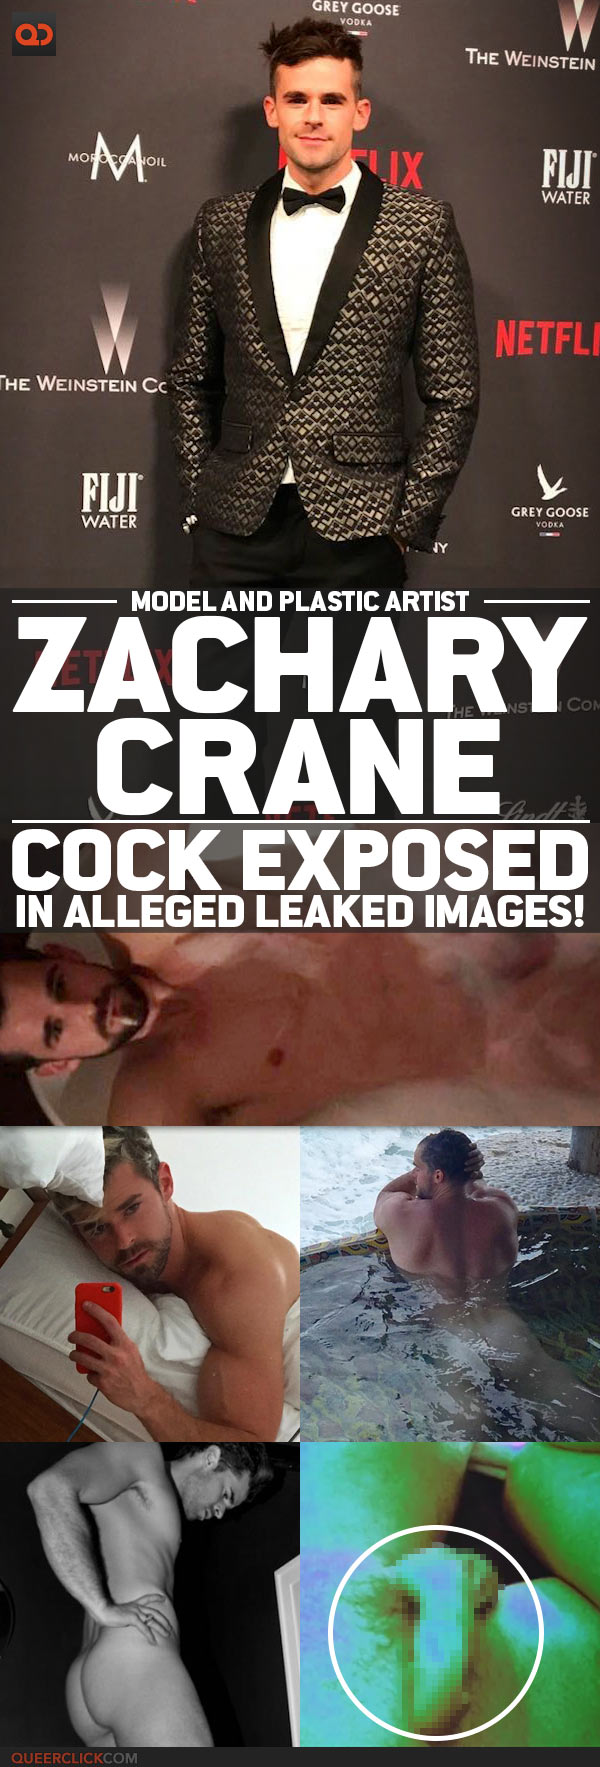 Zachary Crane, Model And Plastic Artist, Cock Exposed In Alleged Leaked Snap!